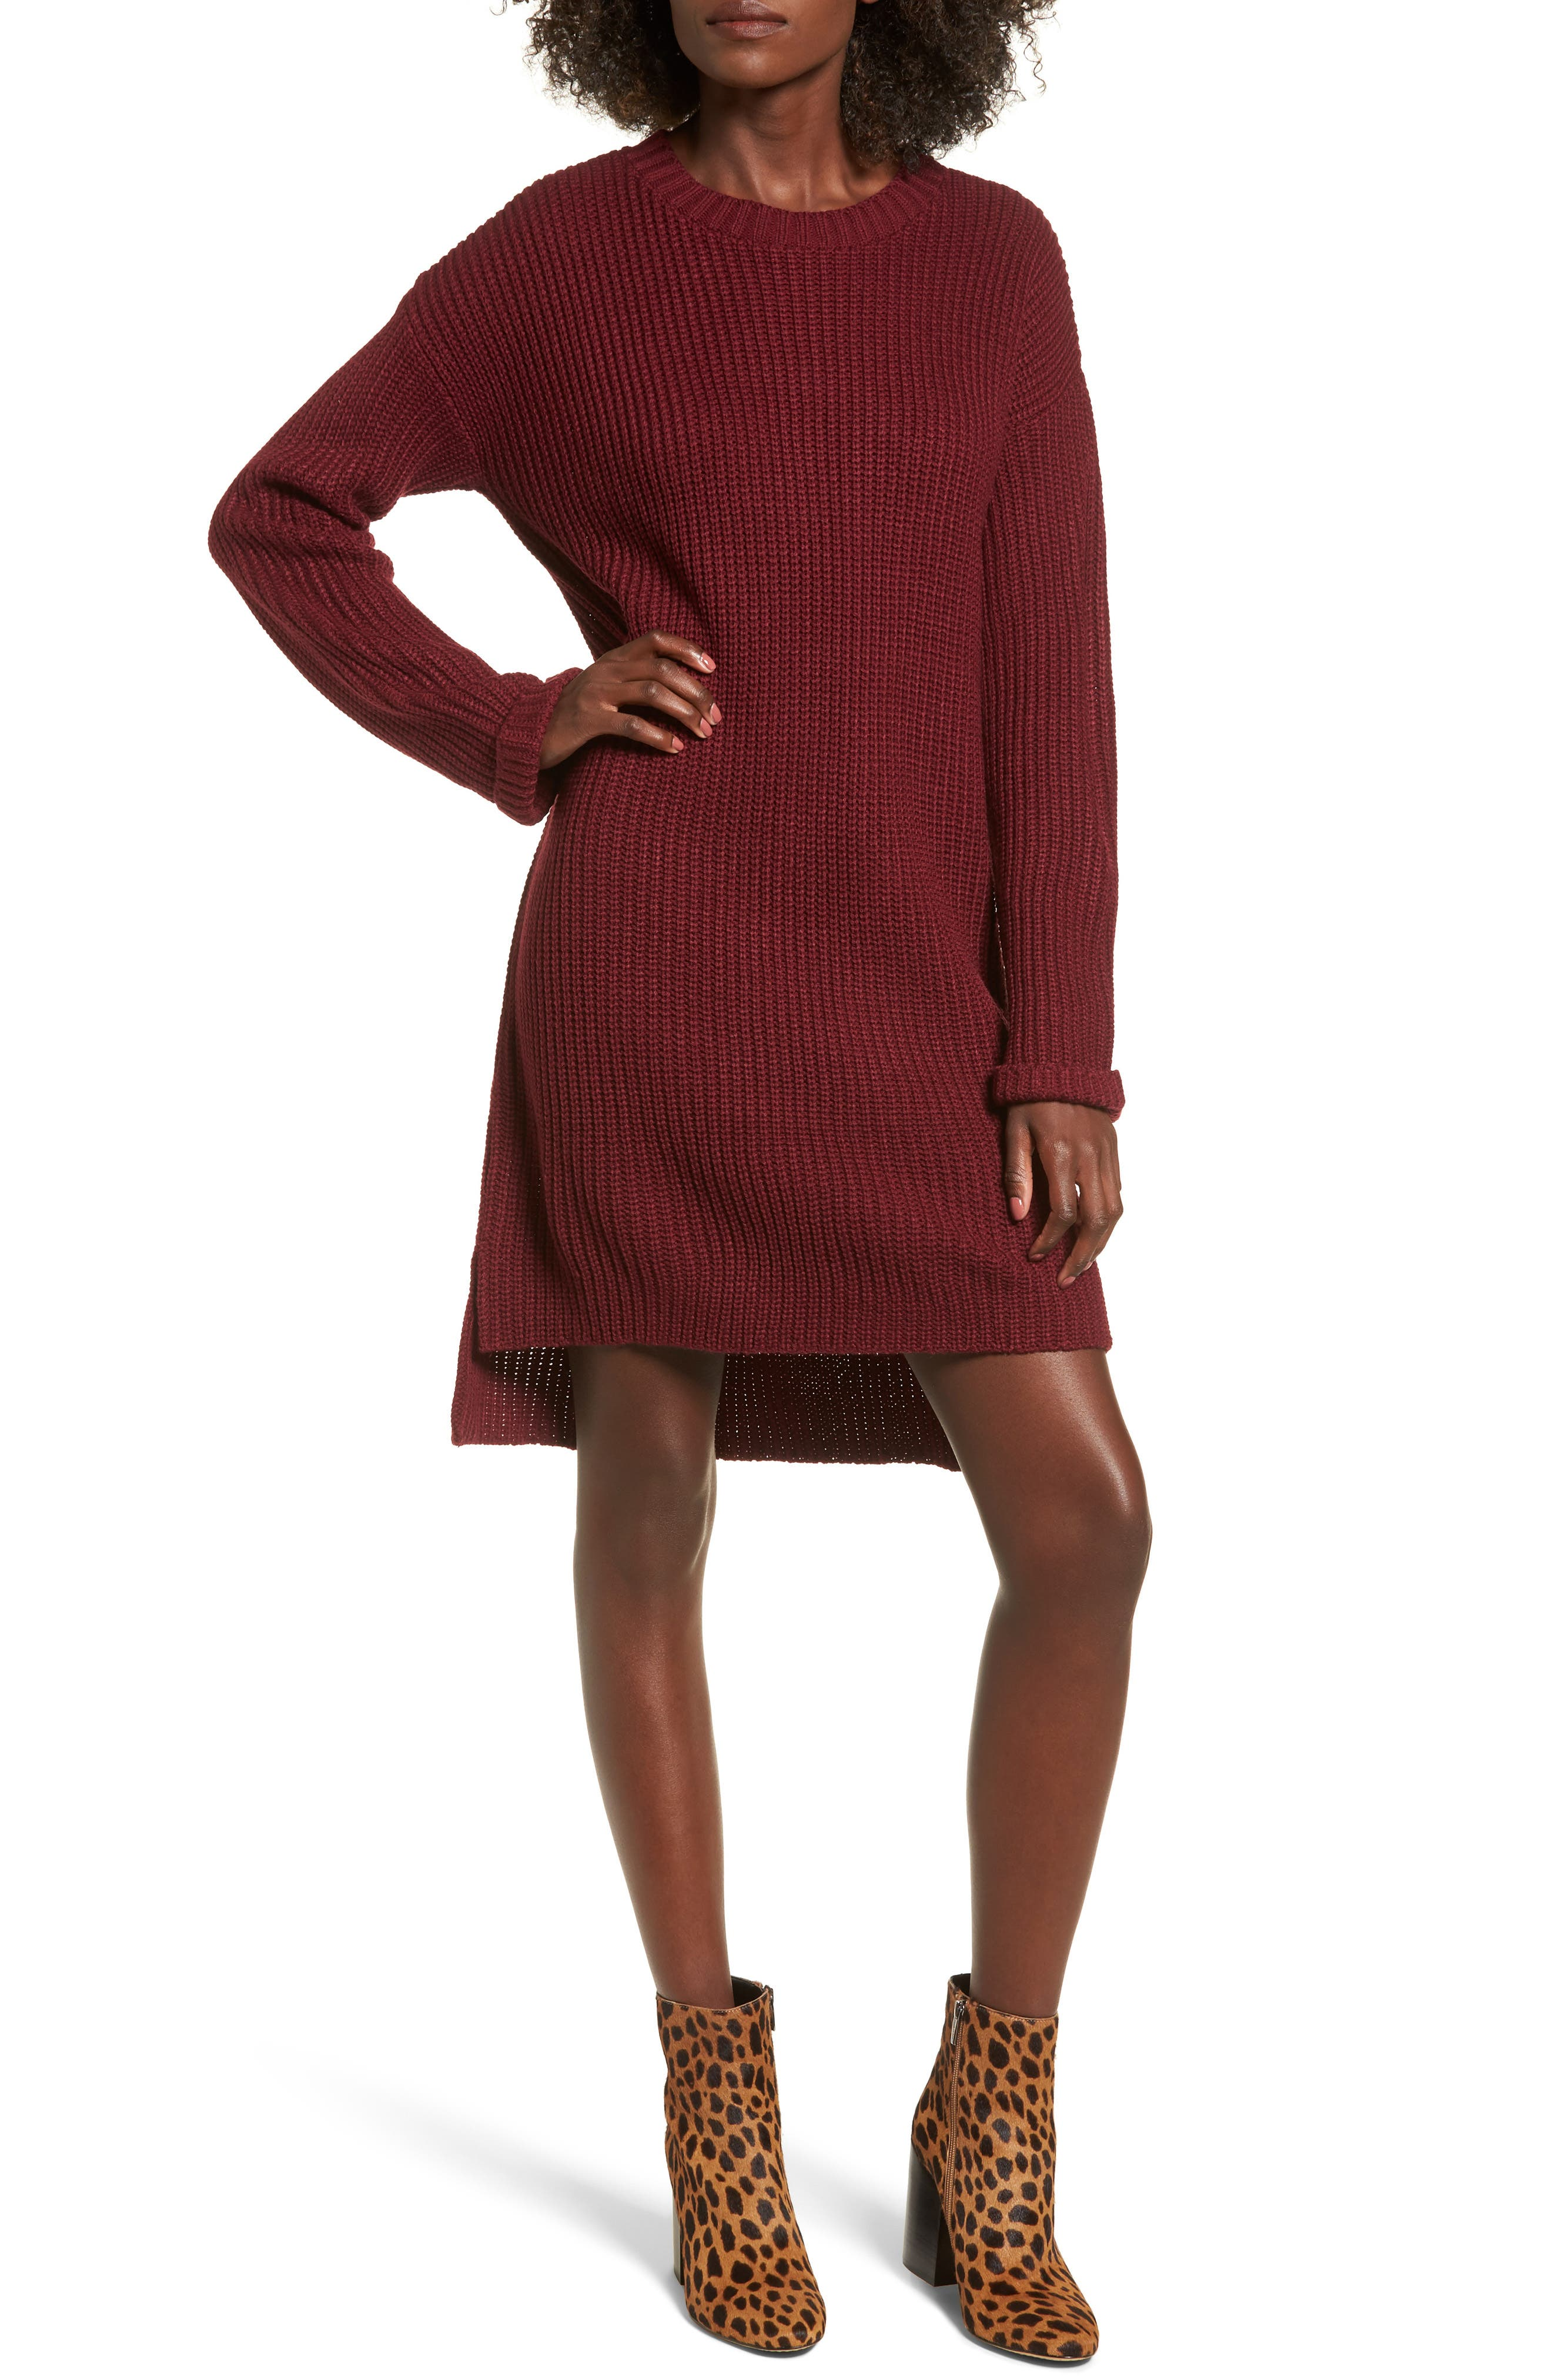 Cotton Emporium Cuff Sweater Dress